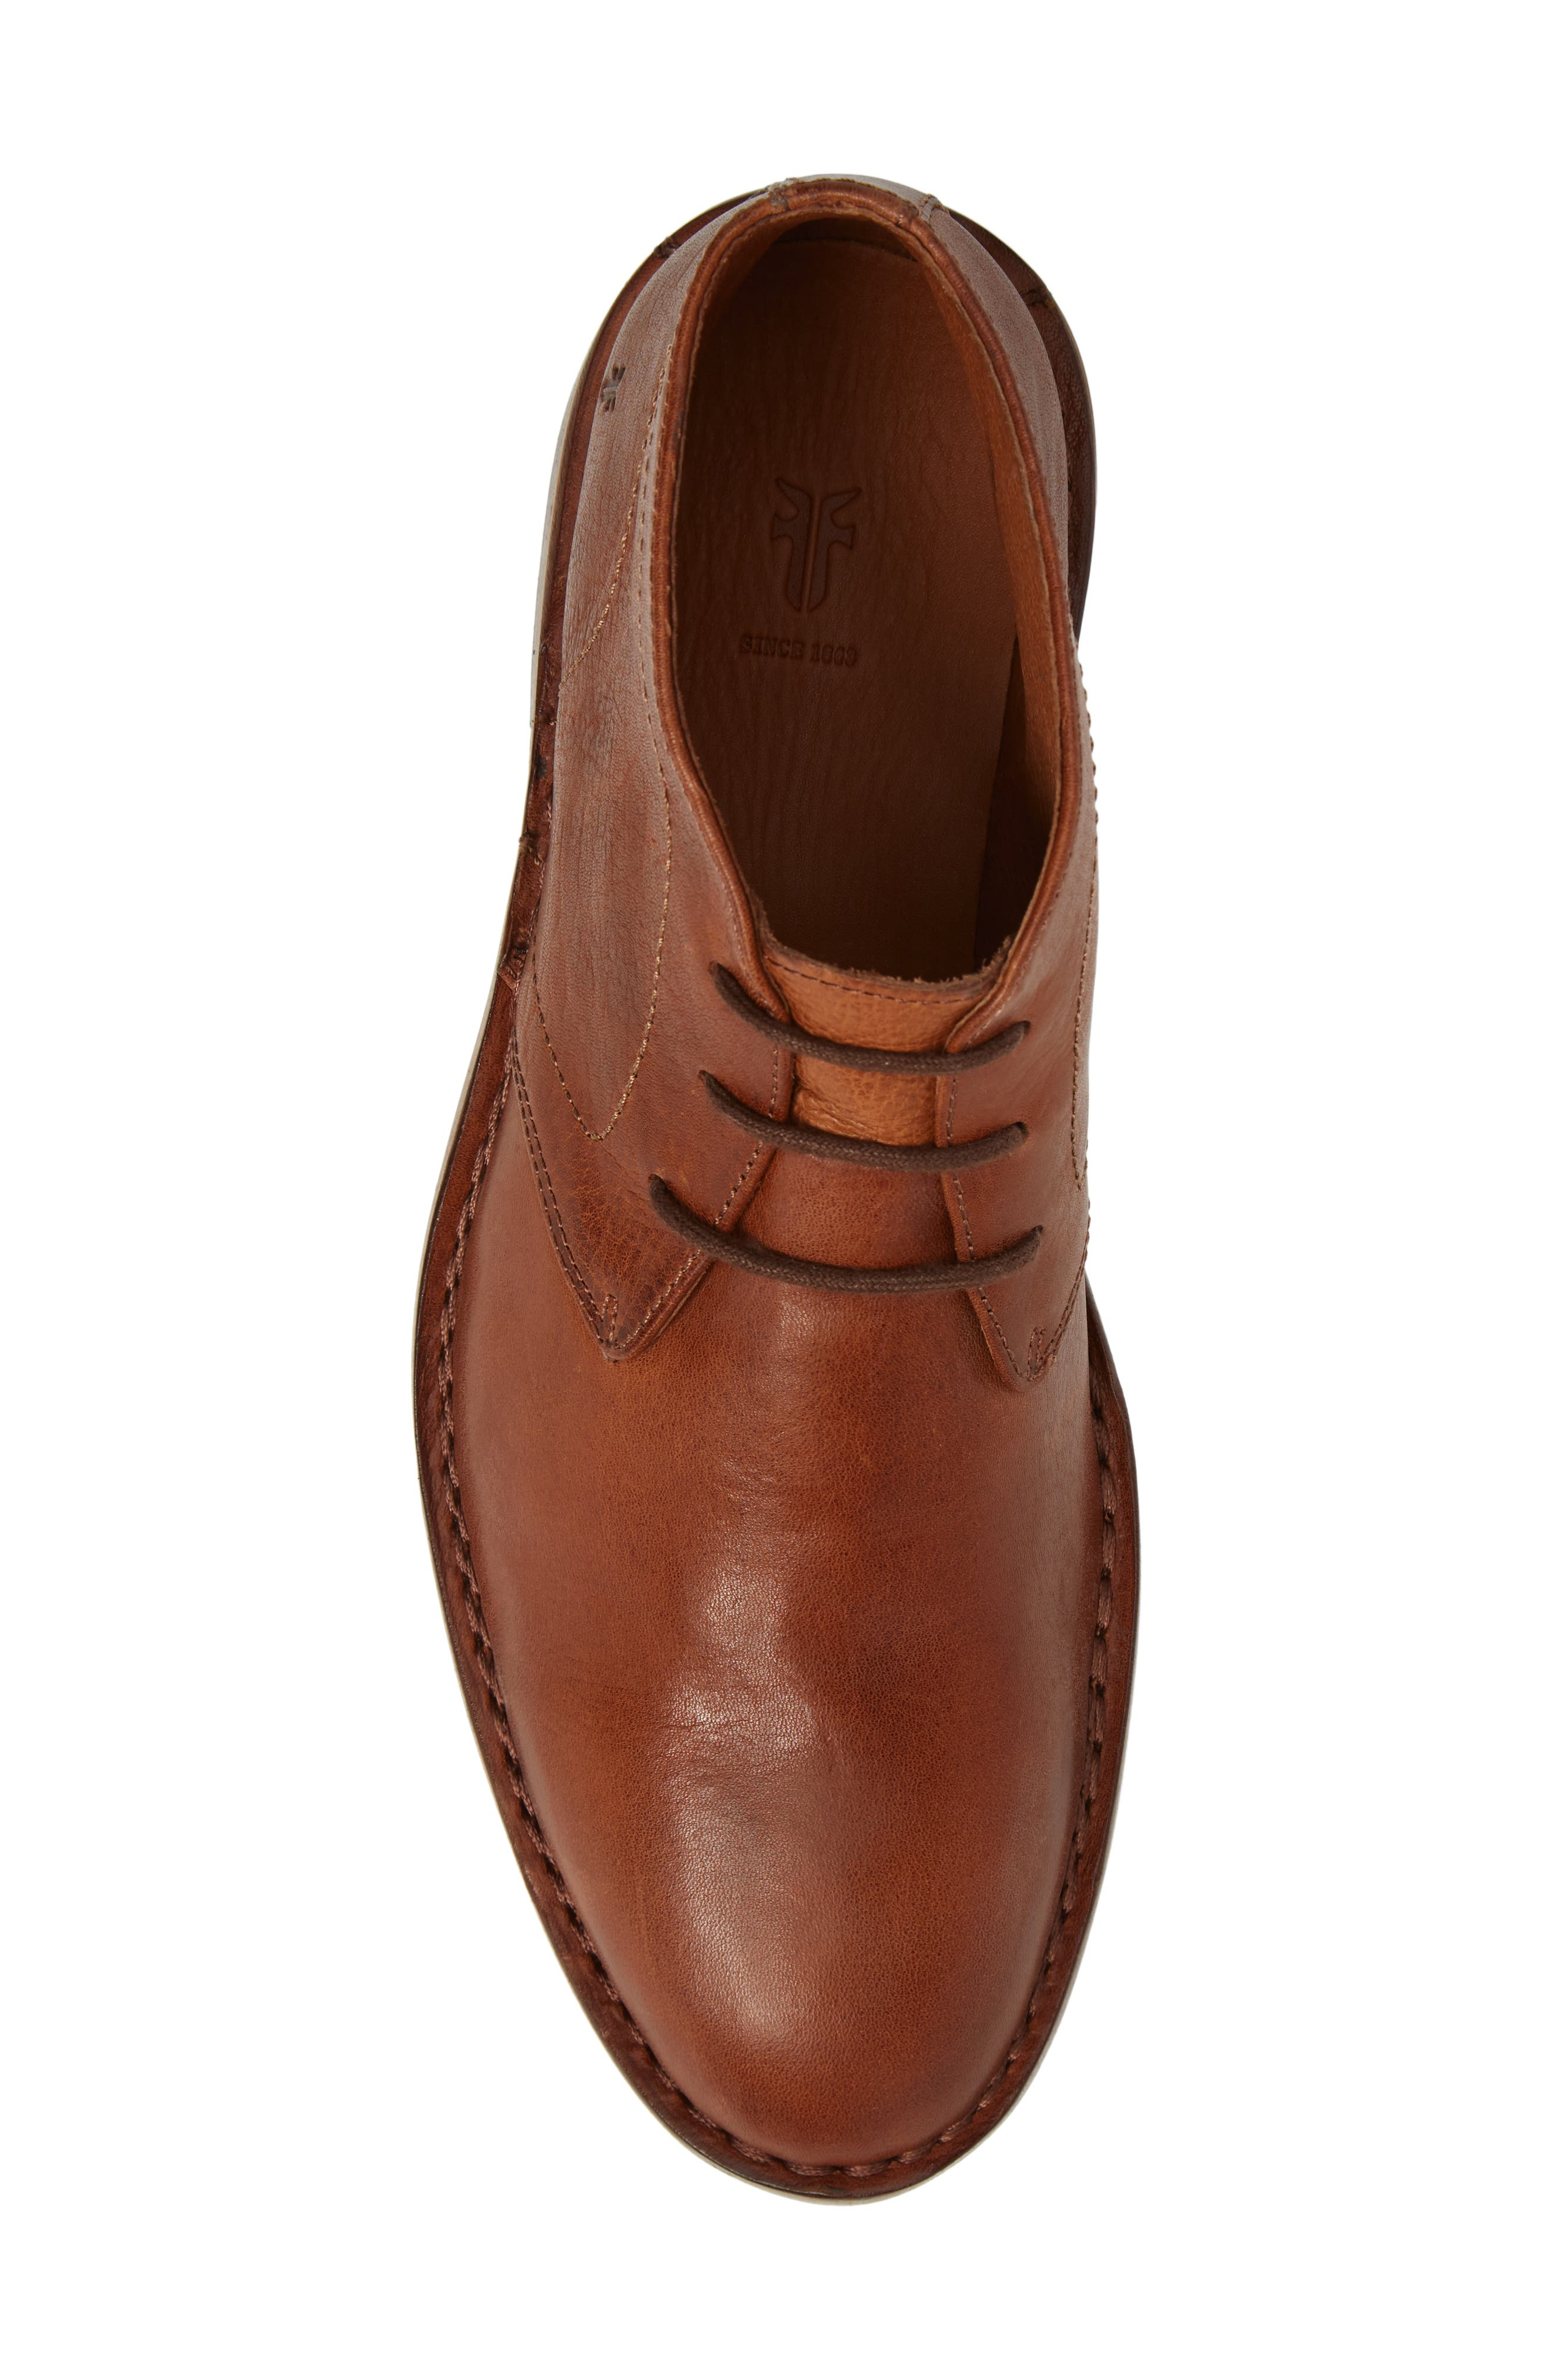 Mark Chukka Boot,                             Alternate thumbnail 4, color,                             Copper Leather